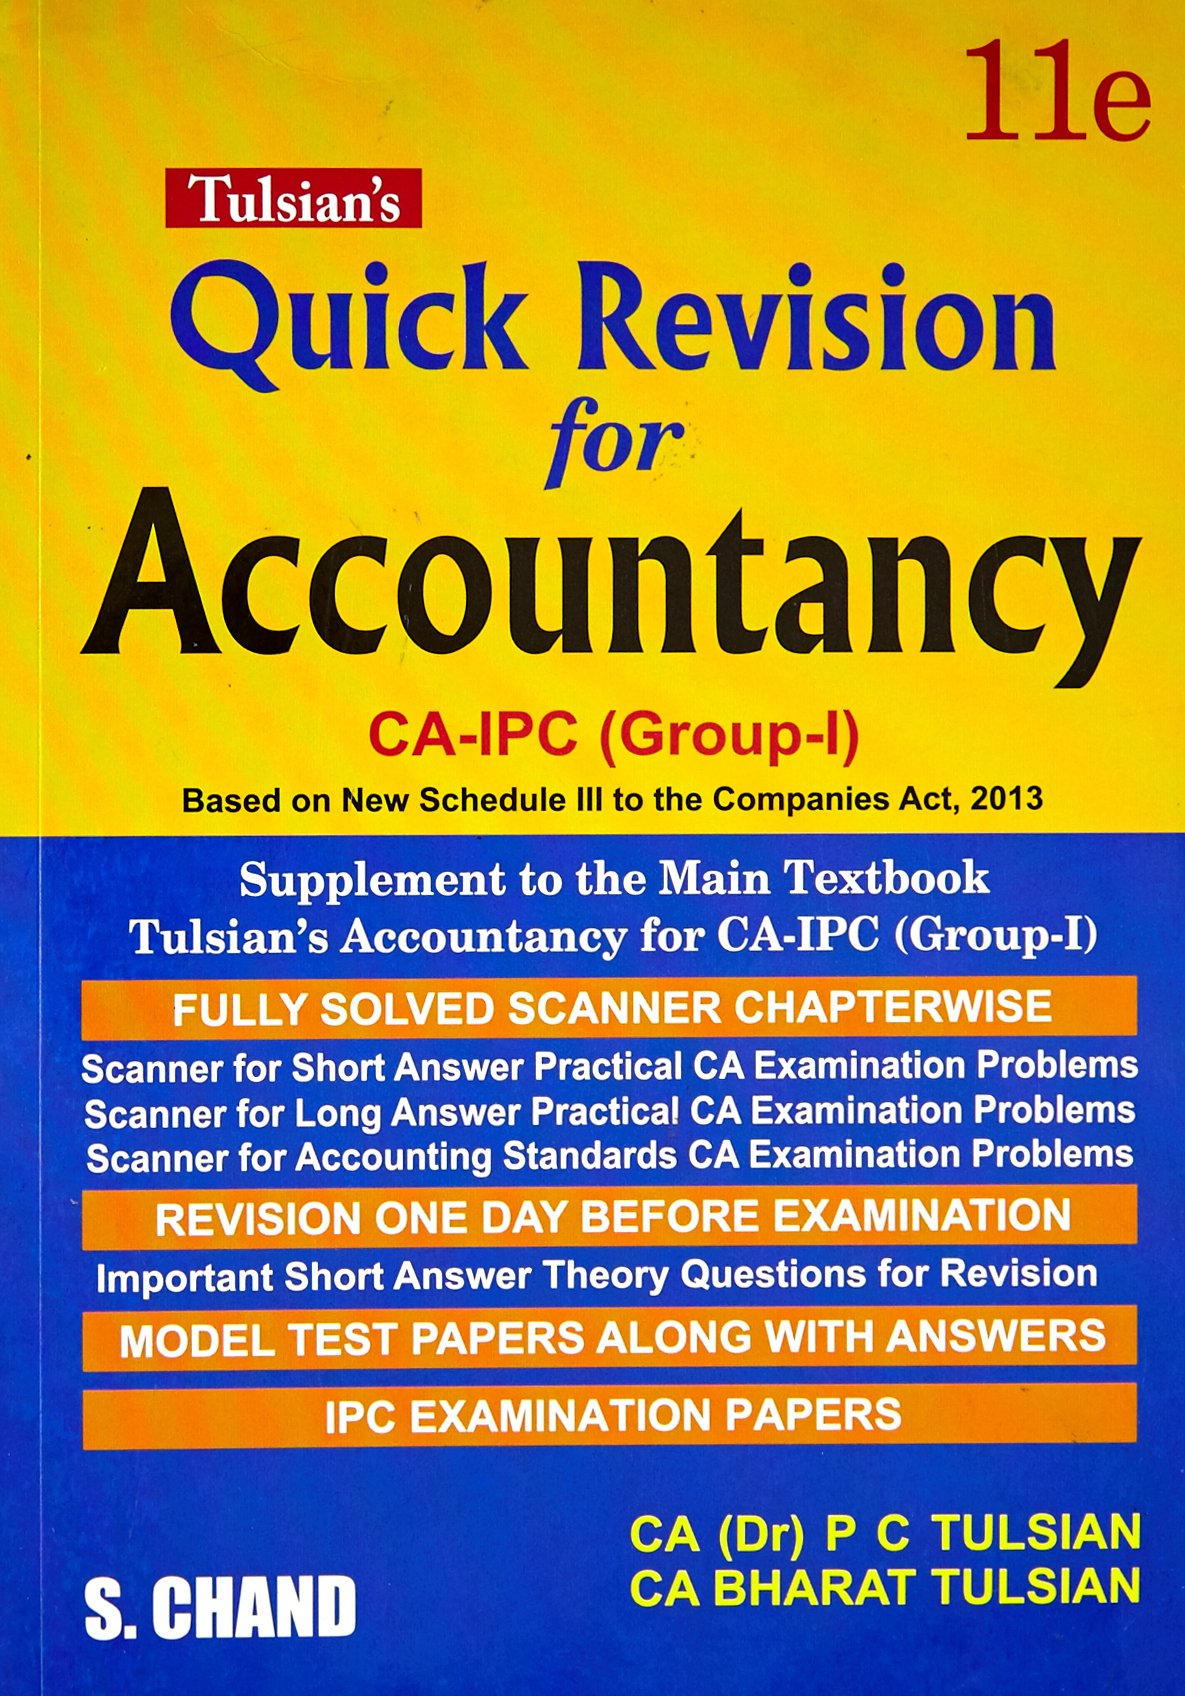 Buy Accountancy for CA-IPC (Group-I) - With Quick Revision Book Book Online  at Low Prices in India | Accountancy for CA-IPC (Group-I) - With Quick  Revision ...